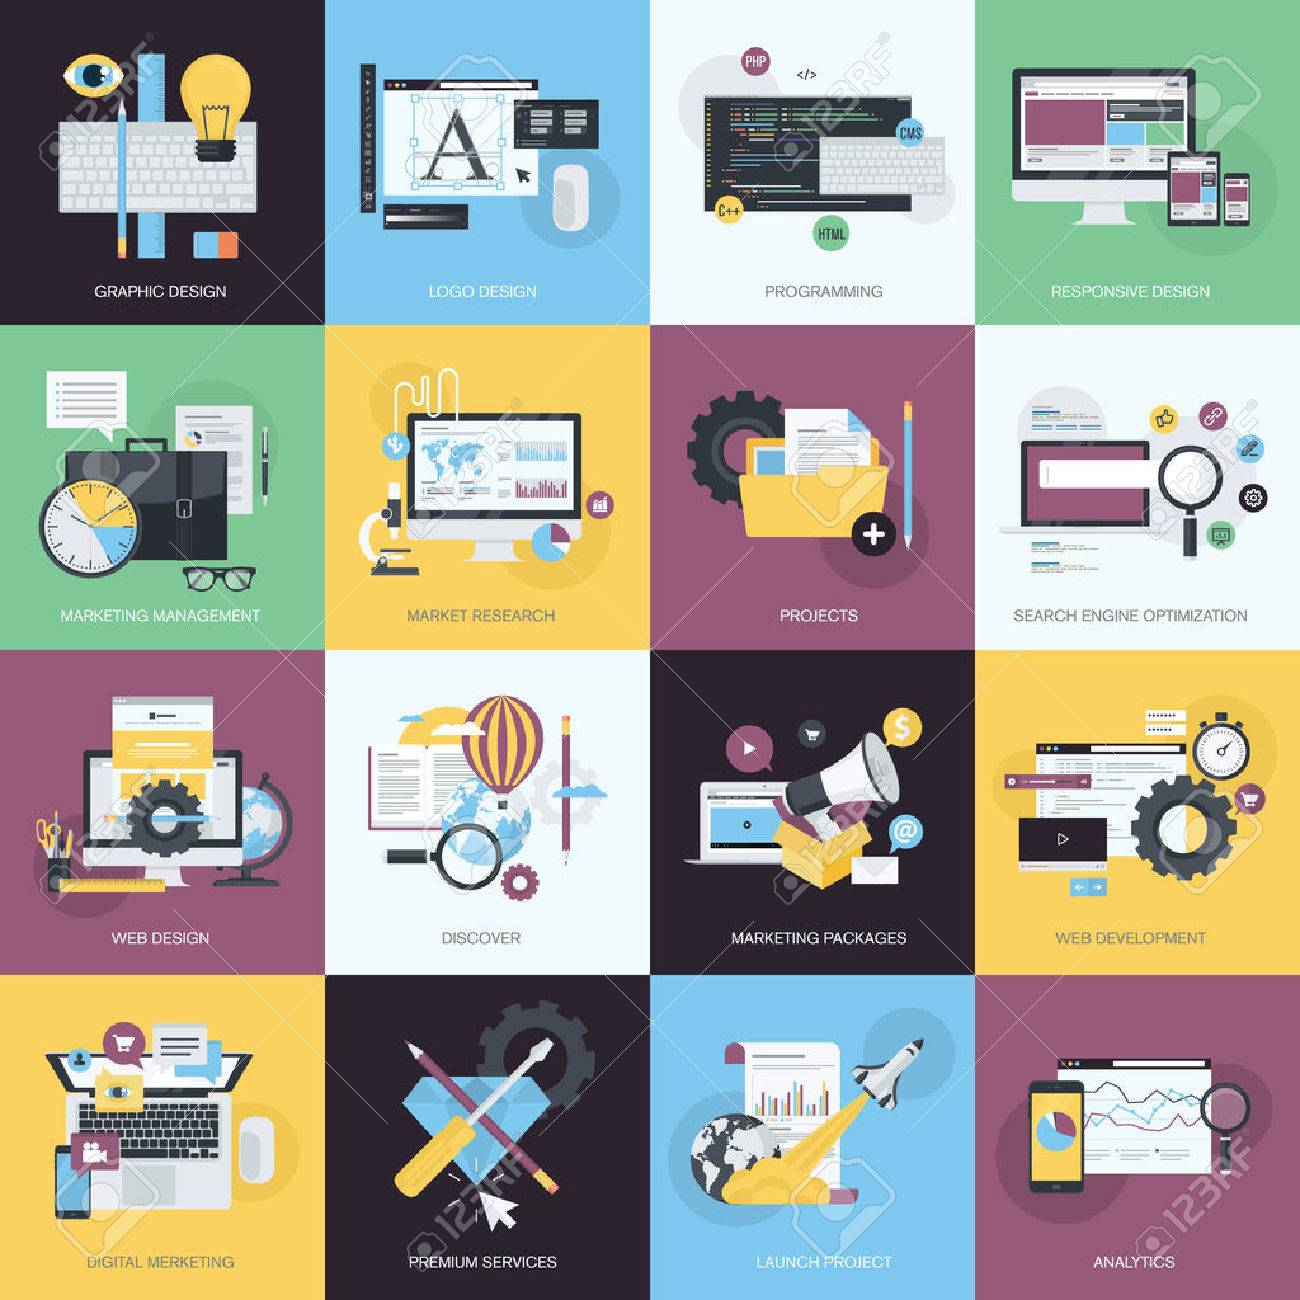 flat design style concept icons on the topic of graphic design flat design style concept icons on the topic of graphic design icon design website